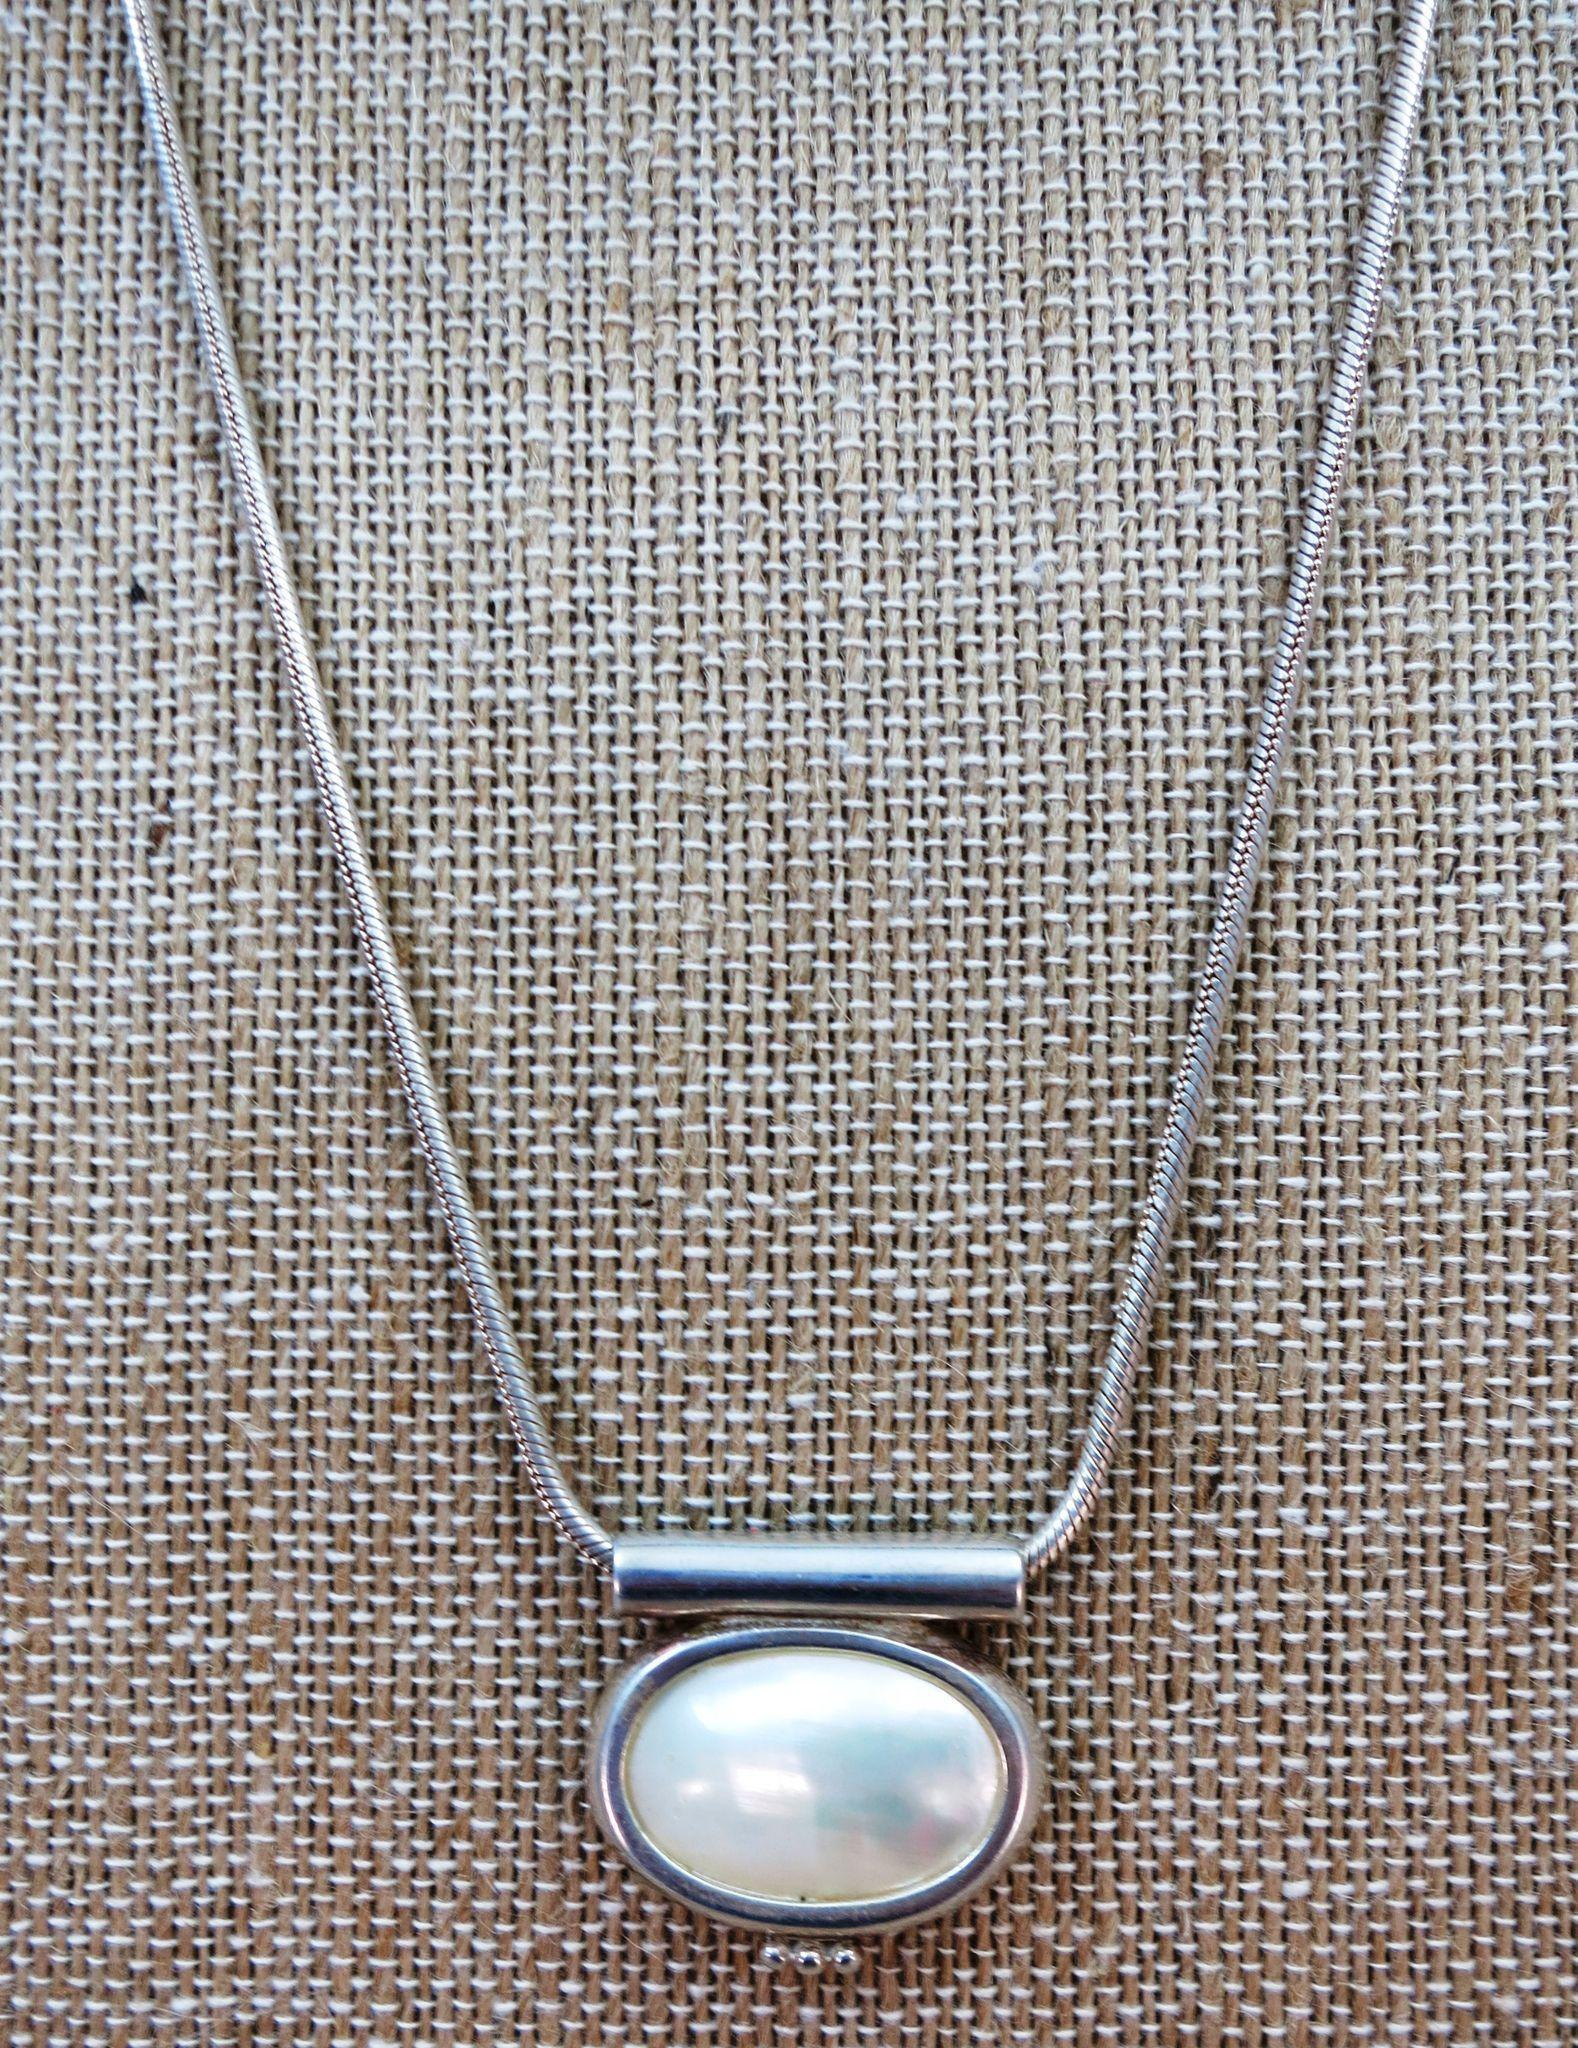 VINTAGE  Extra Long Heavy Snake Chain and Mother of Pearl Pendant  29 Inches Long  Great Chain